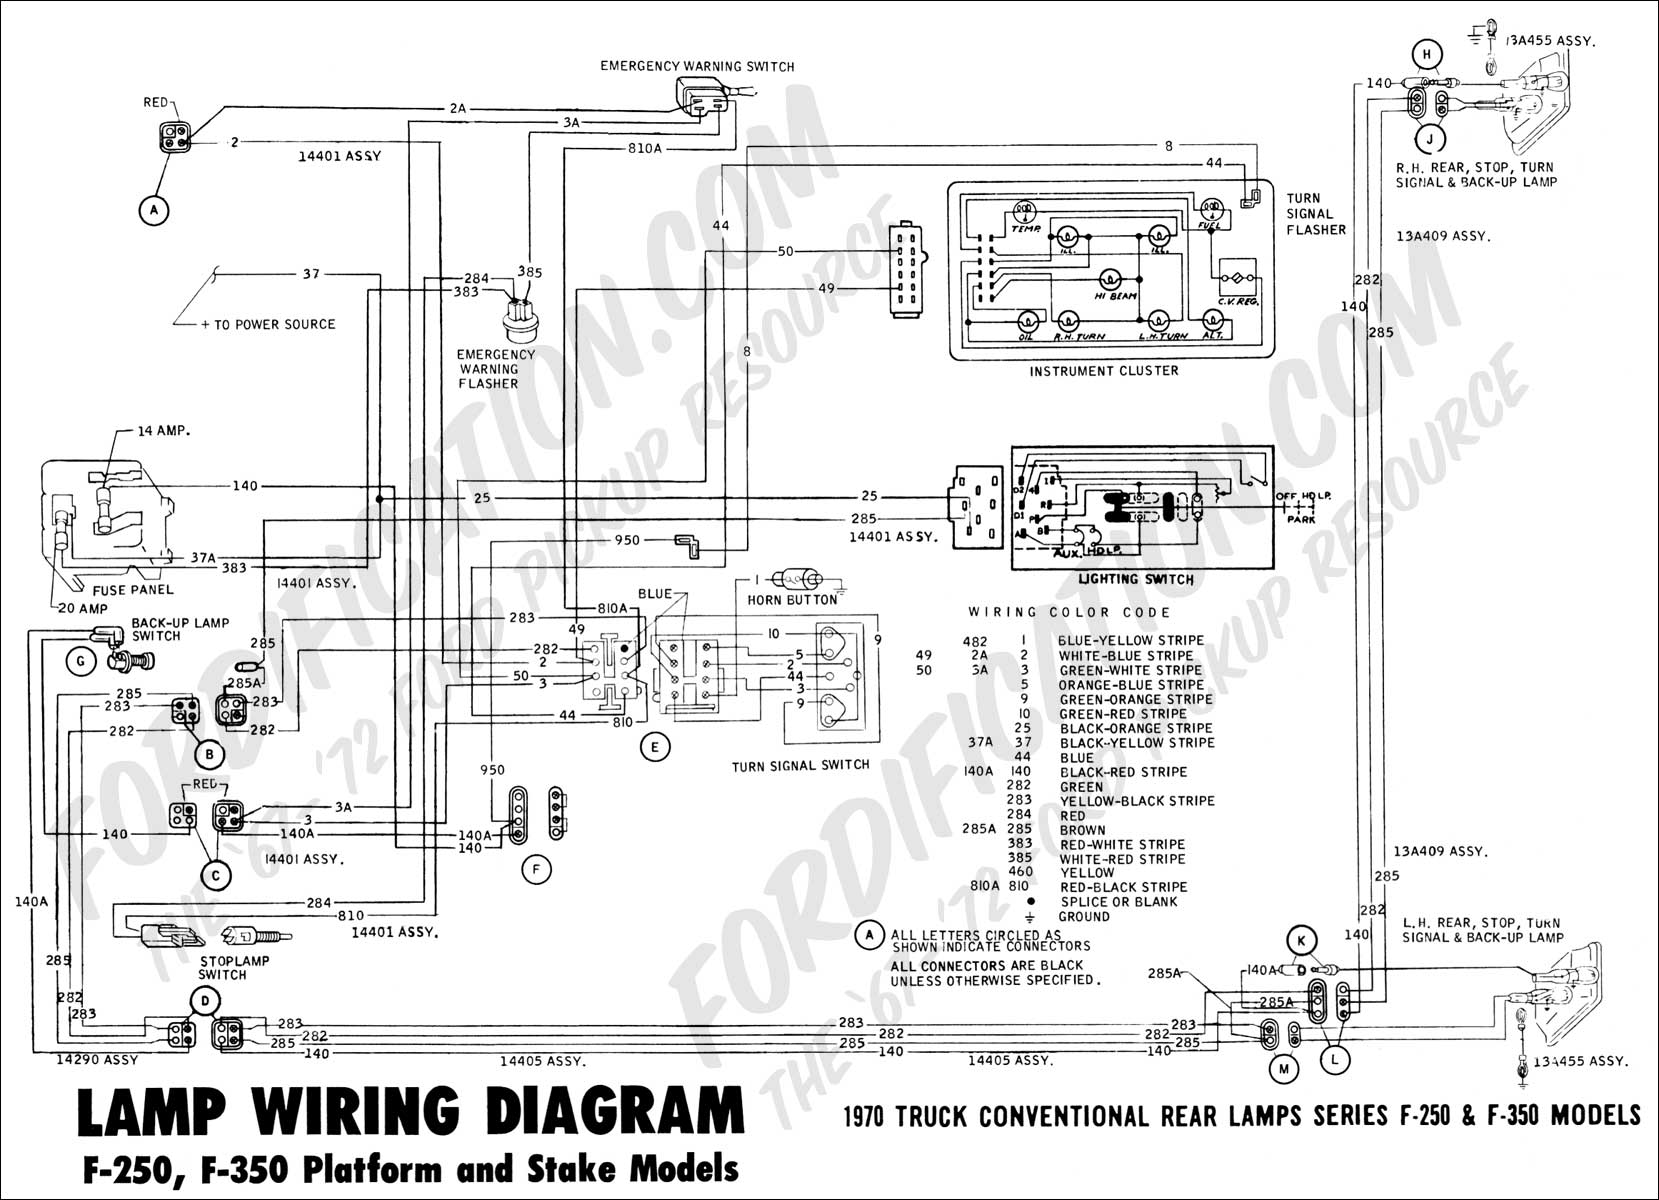 hight resolution of 2002 ford f150 electrical diagram wiring diagram used 02 f150 wiring diagram wiring diagram expert 2002